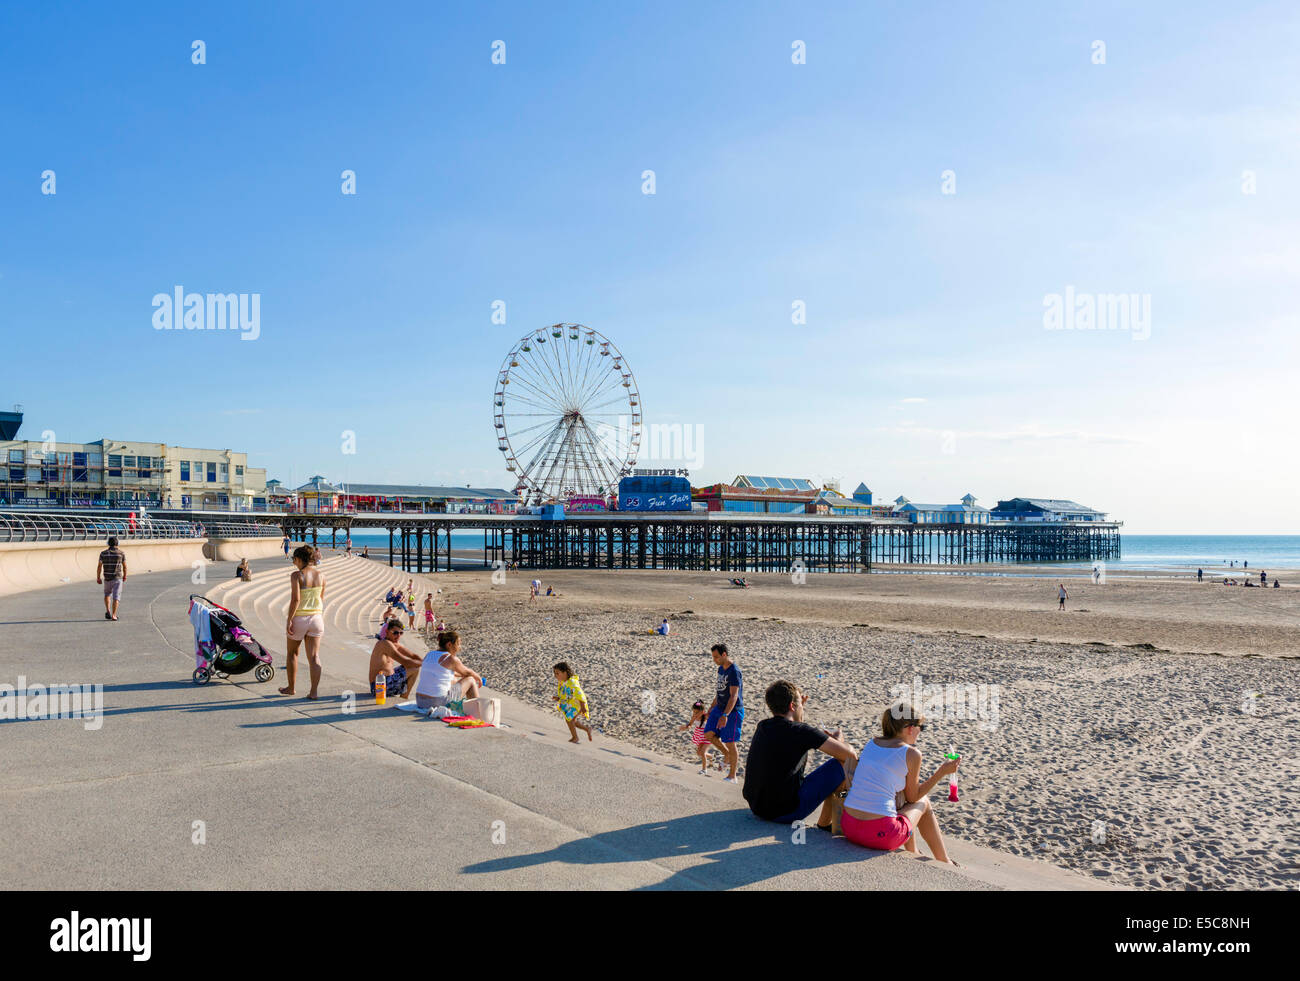 Beach and Central Pier in the late afternoon, The Golden Mile, Blackpool, Lancashire, UK - Stock Image